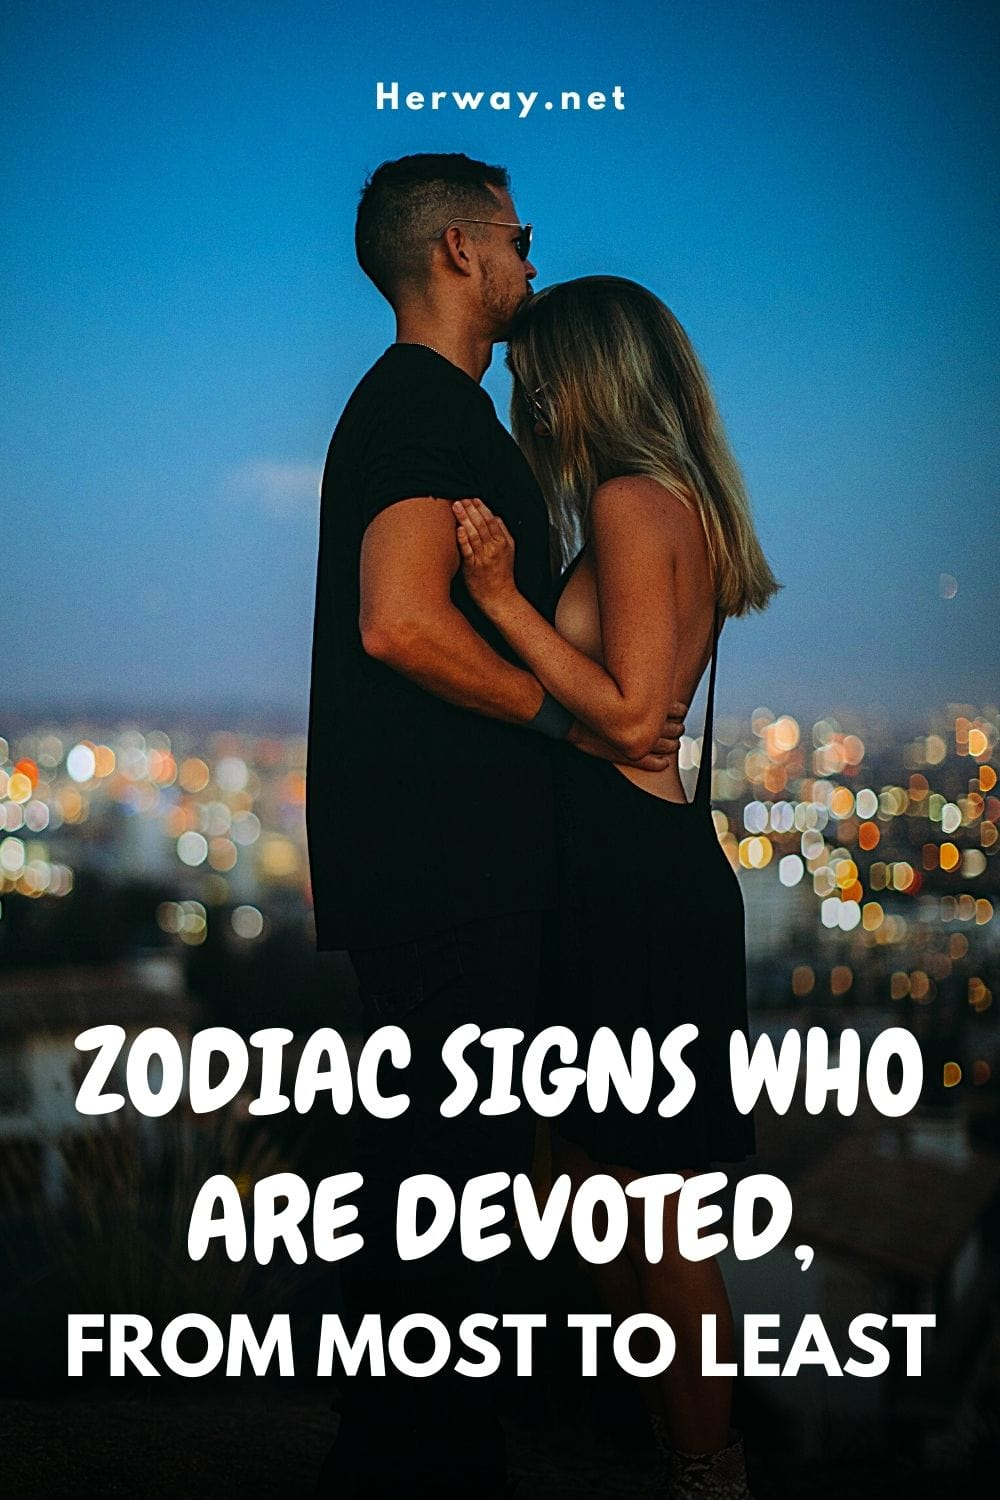 Zodiac Signs Who Are Devoted, From Most To Least